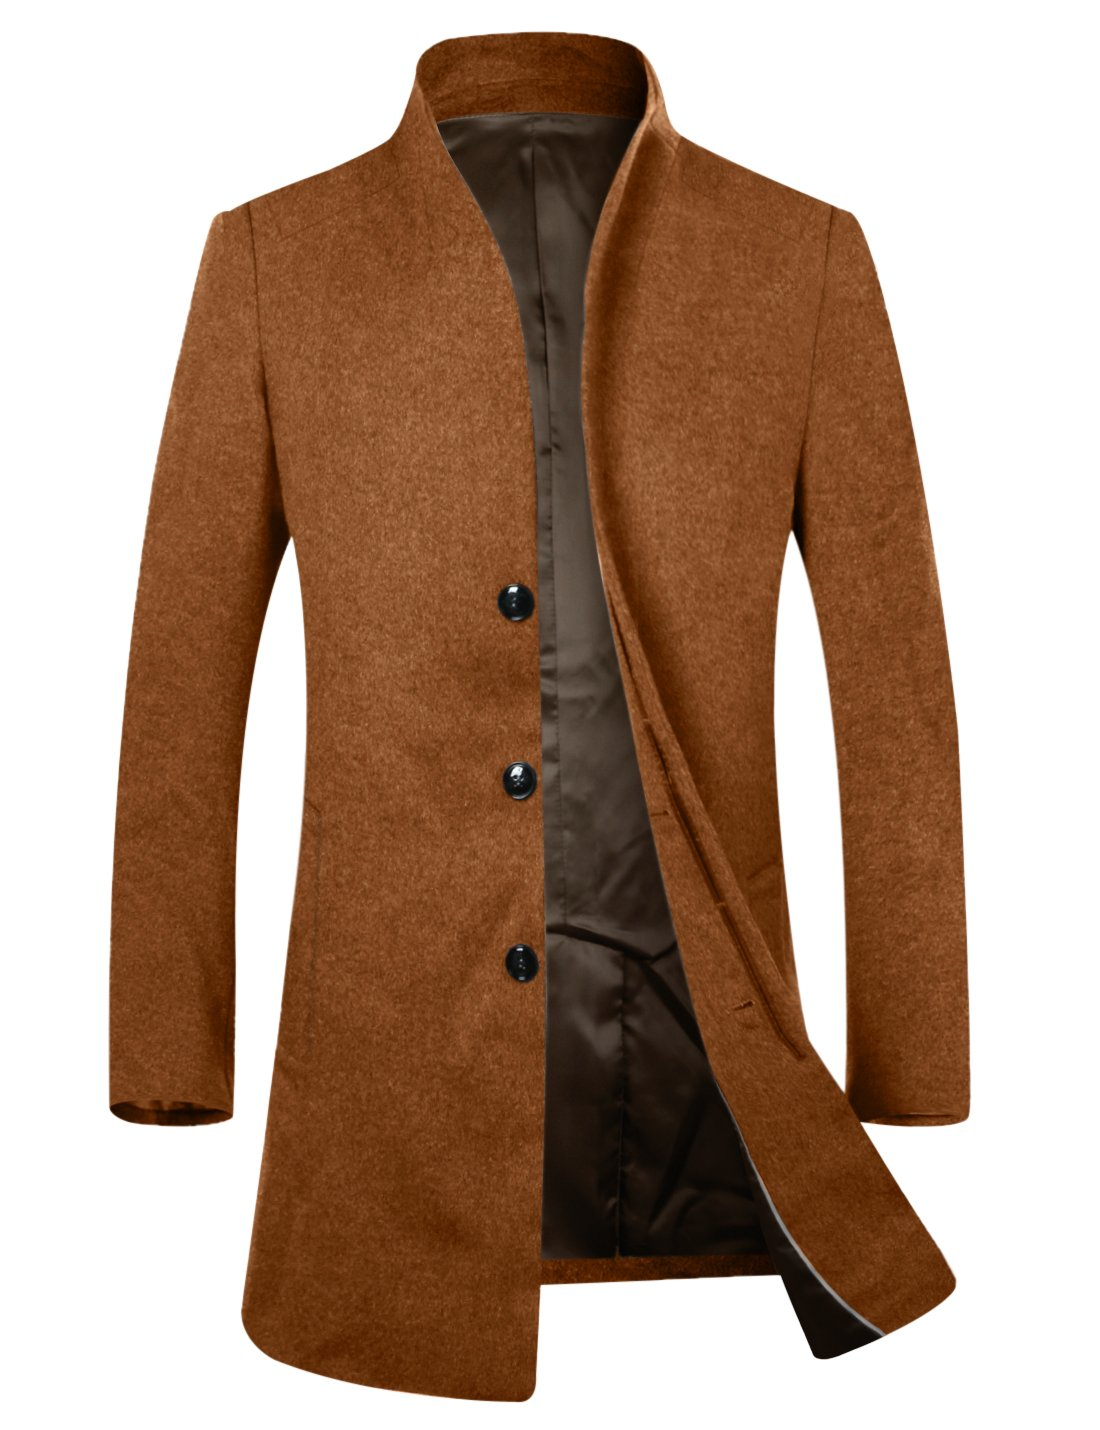 APTRO Men's Wool French Front Slim Fit Long Business Coat 1681 DZDY Camel M